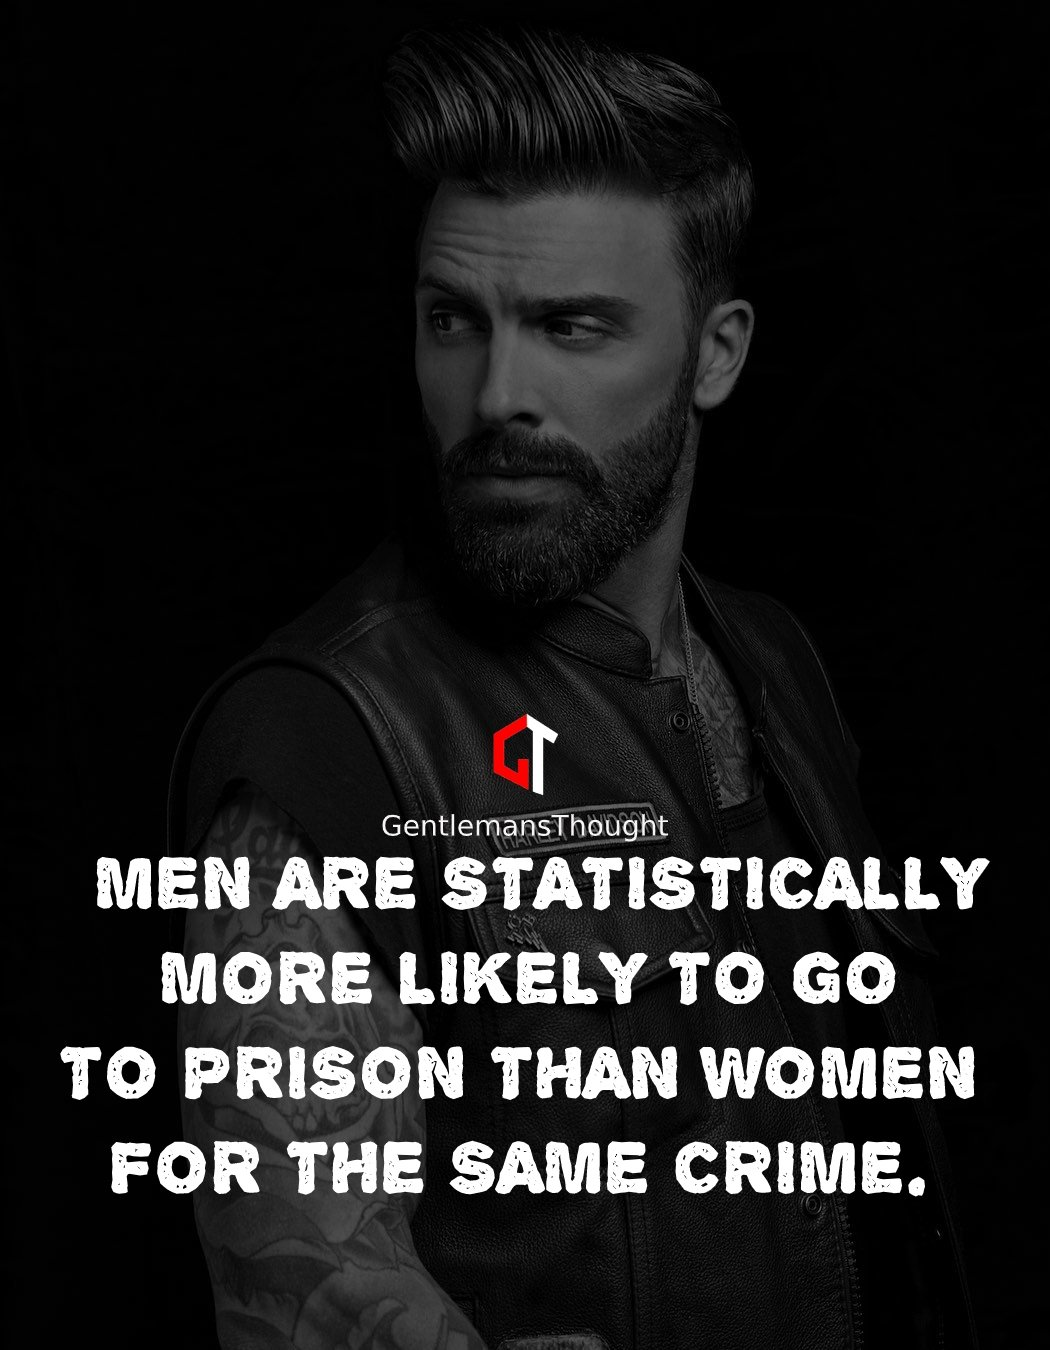 MEN ARE STATISTICALLY MORE LIKELY TO GO TO PRISON THAN WOMEN FOR THE SAME CRIME.